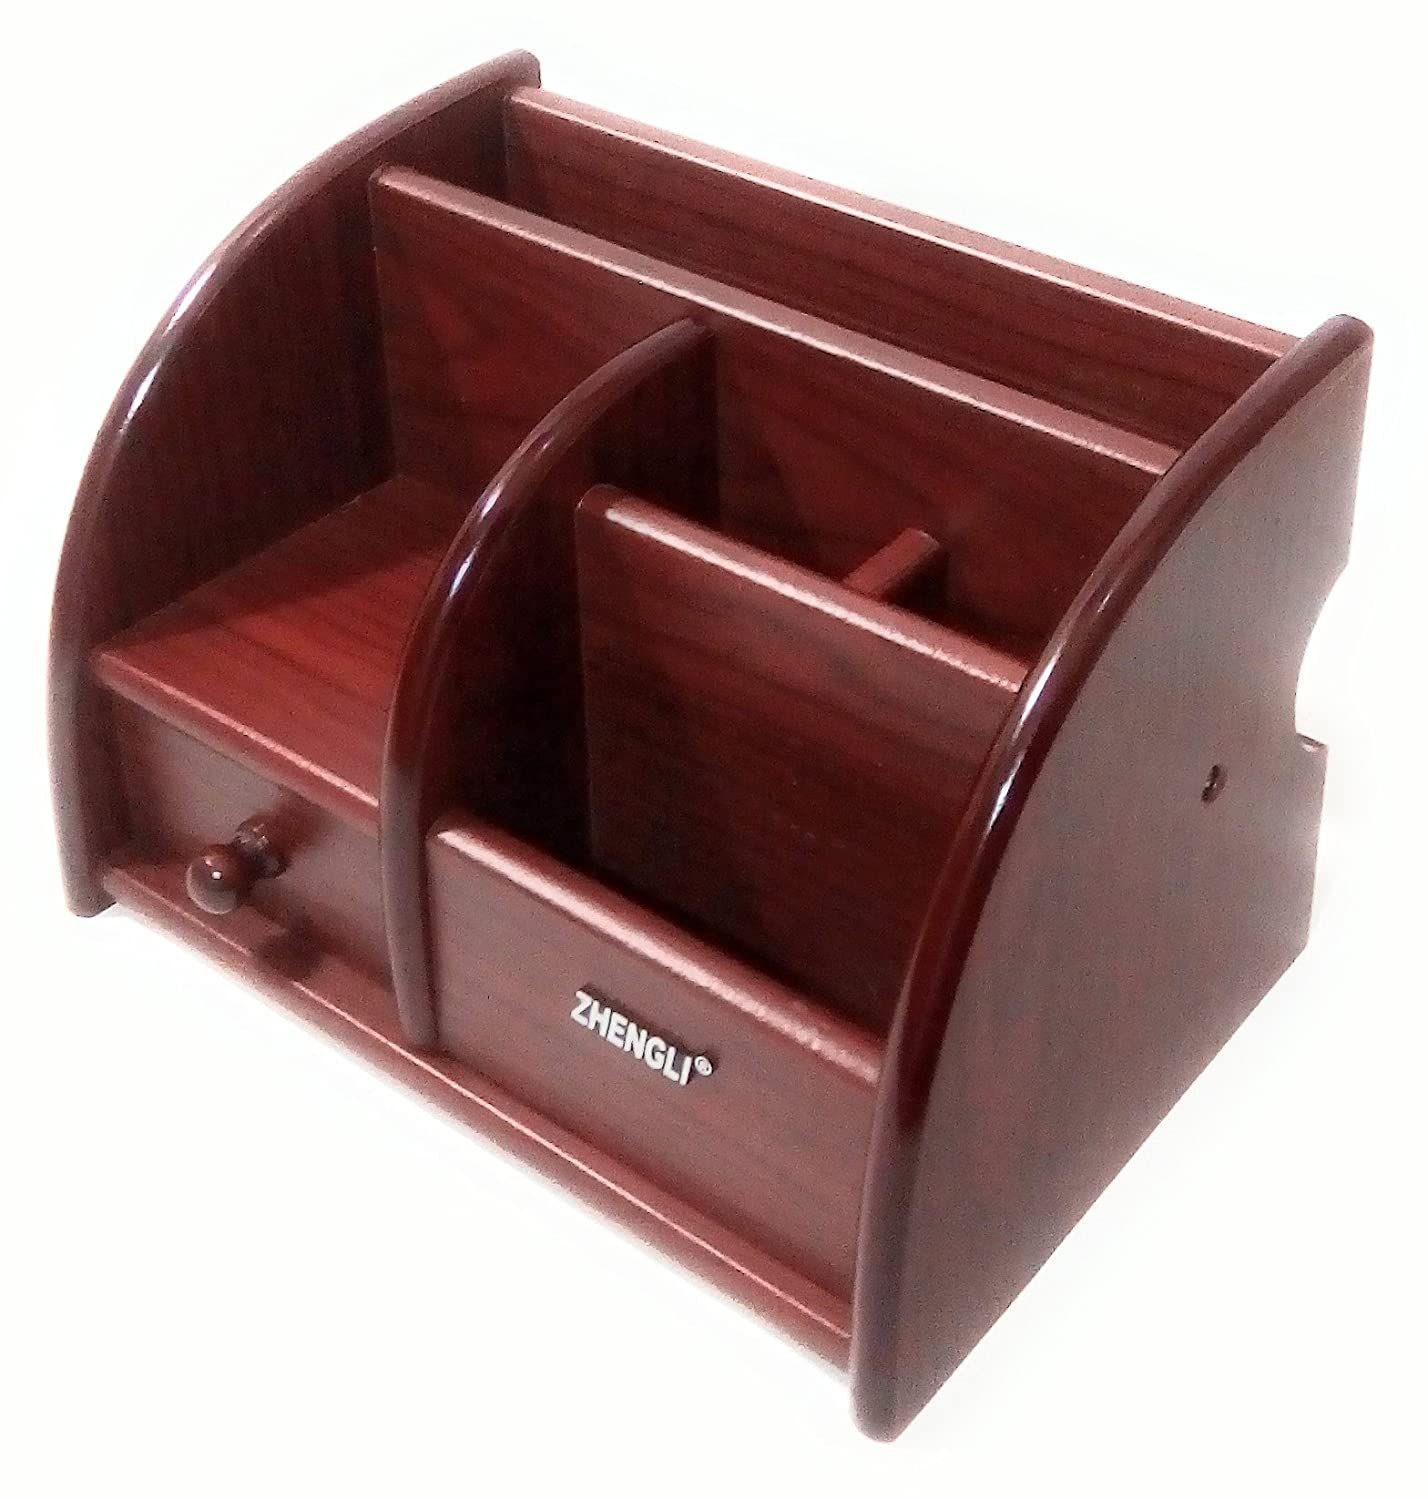 Which Are The Best Desk Organizers For The Study Table In India In 2020 Study Table Best Desk Desk Organizers